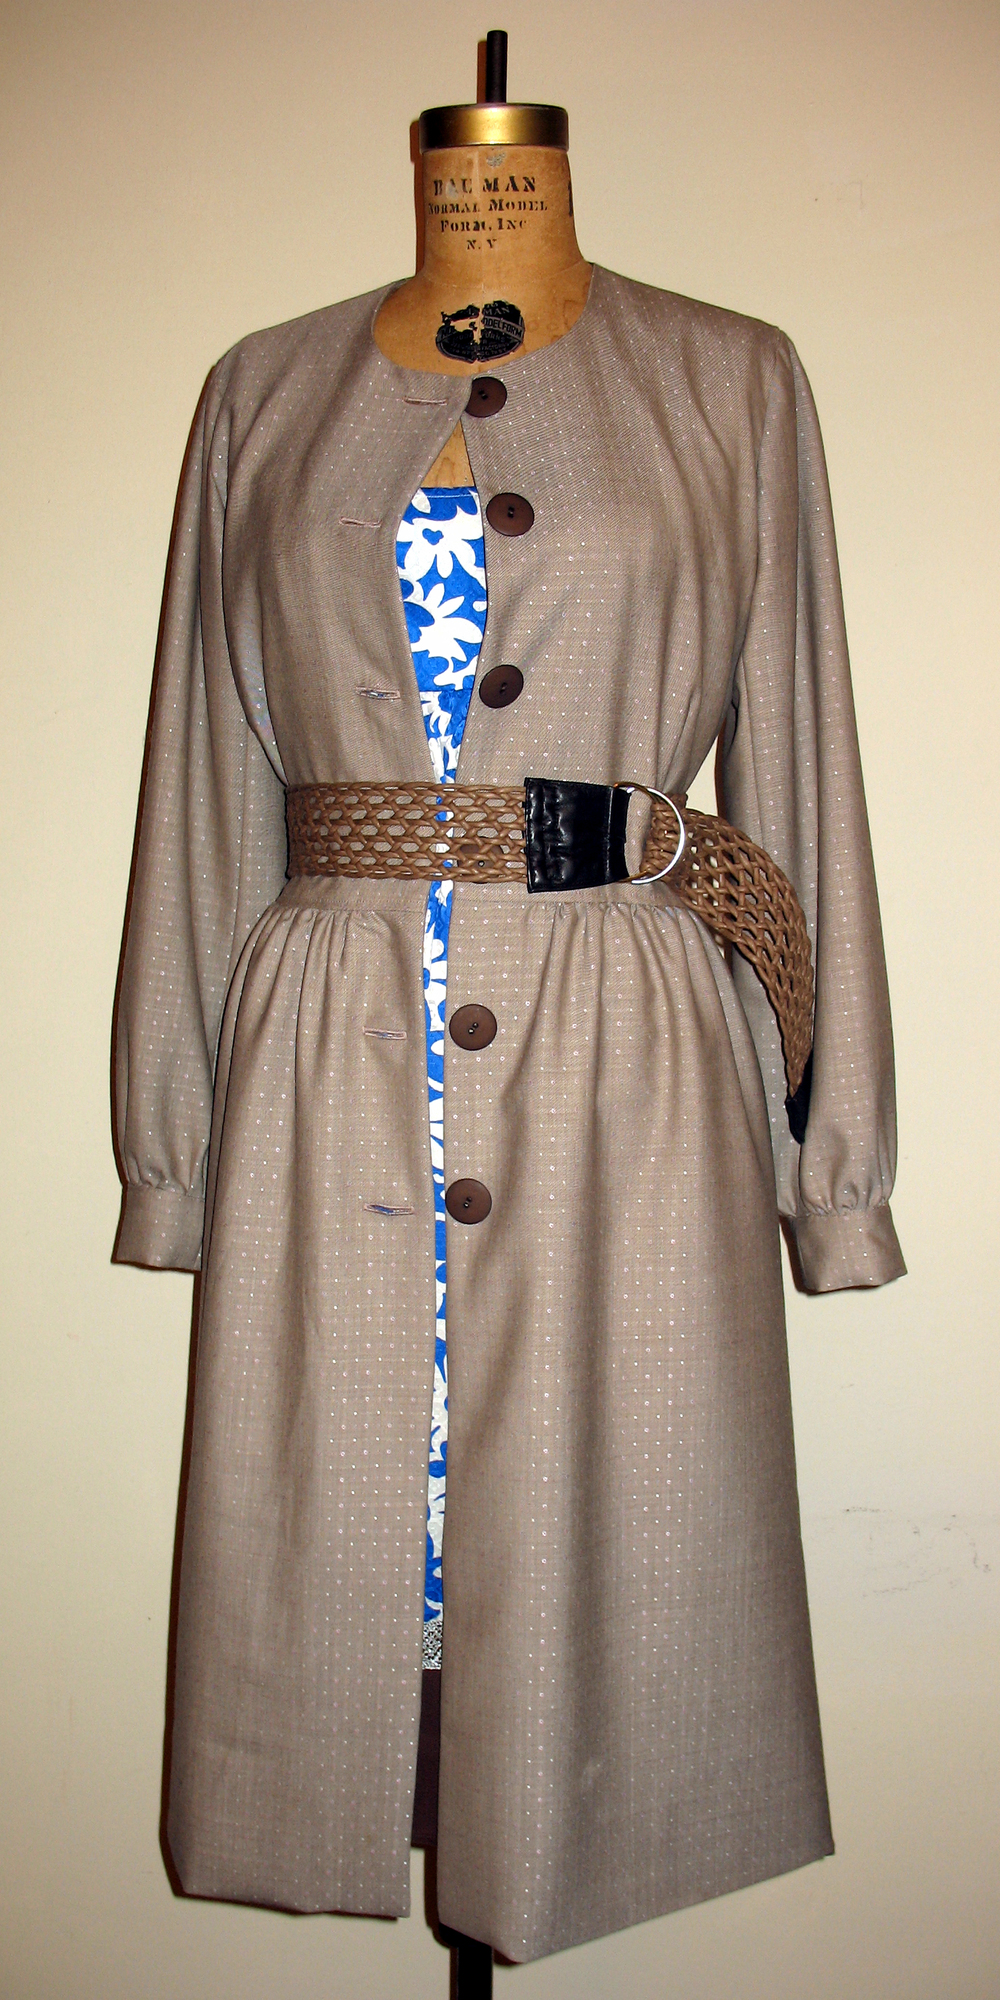 Lined Princess Car Coat in Dotted Jaquard Suiting.